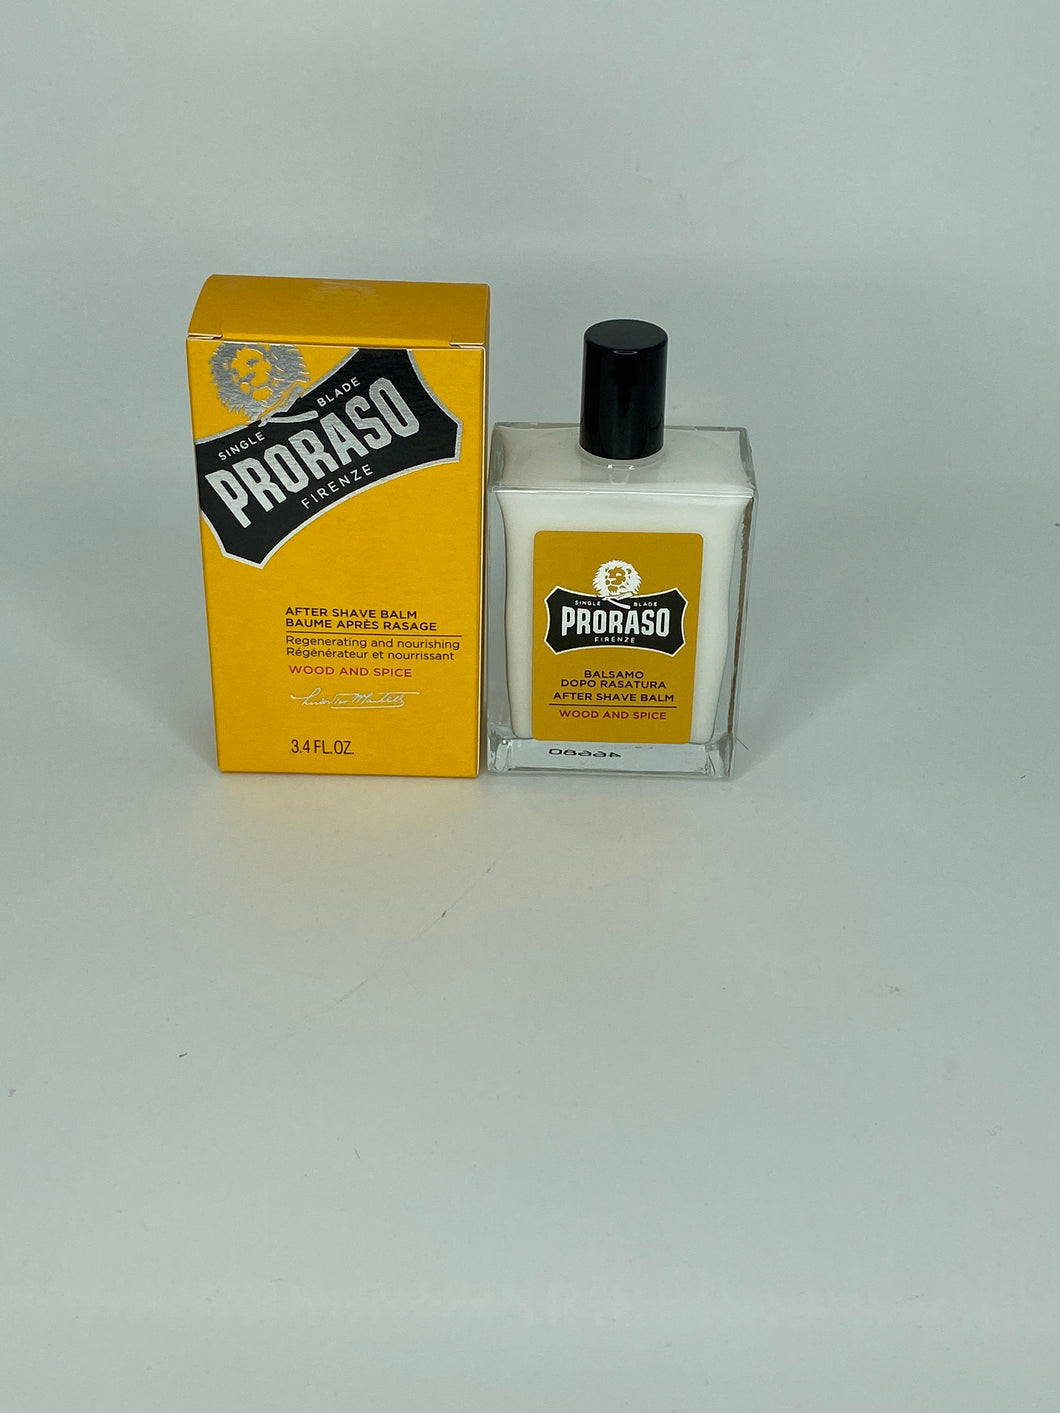 Proraso Wood Spice After Shave Balm